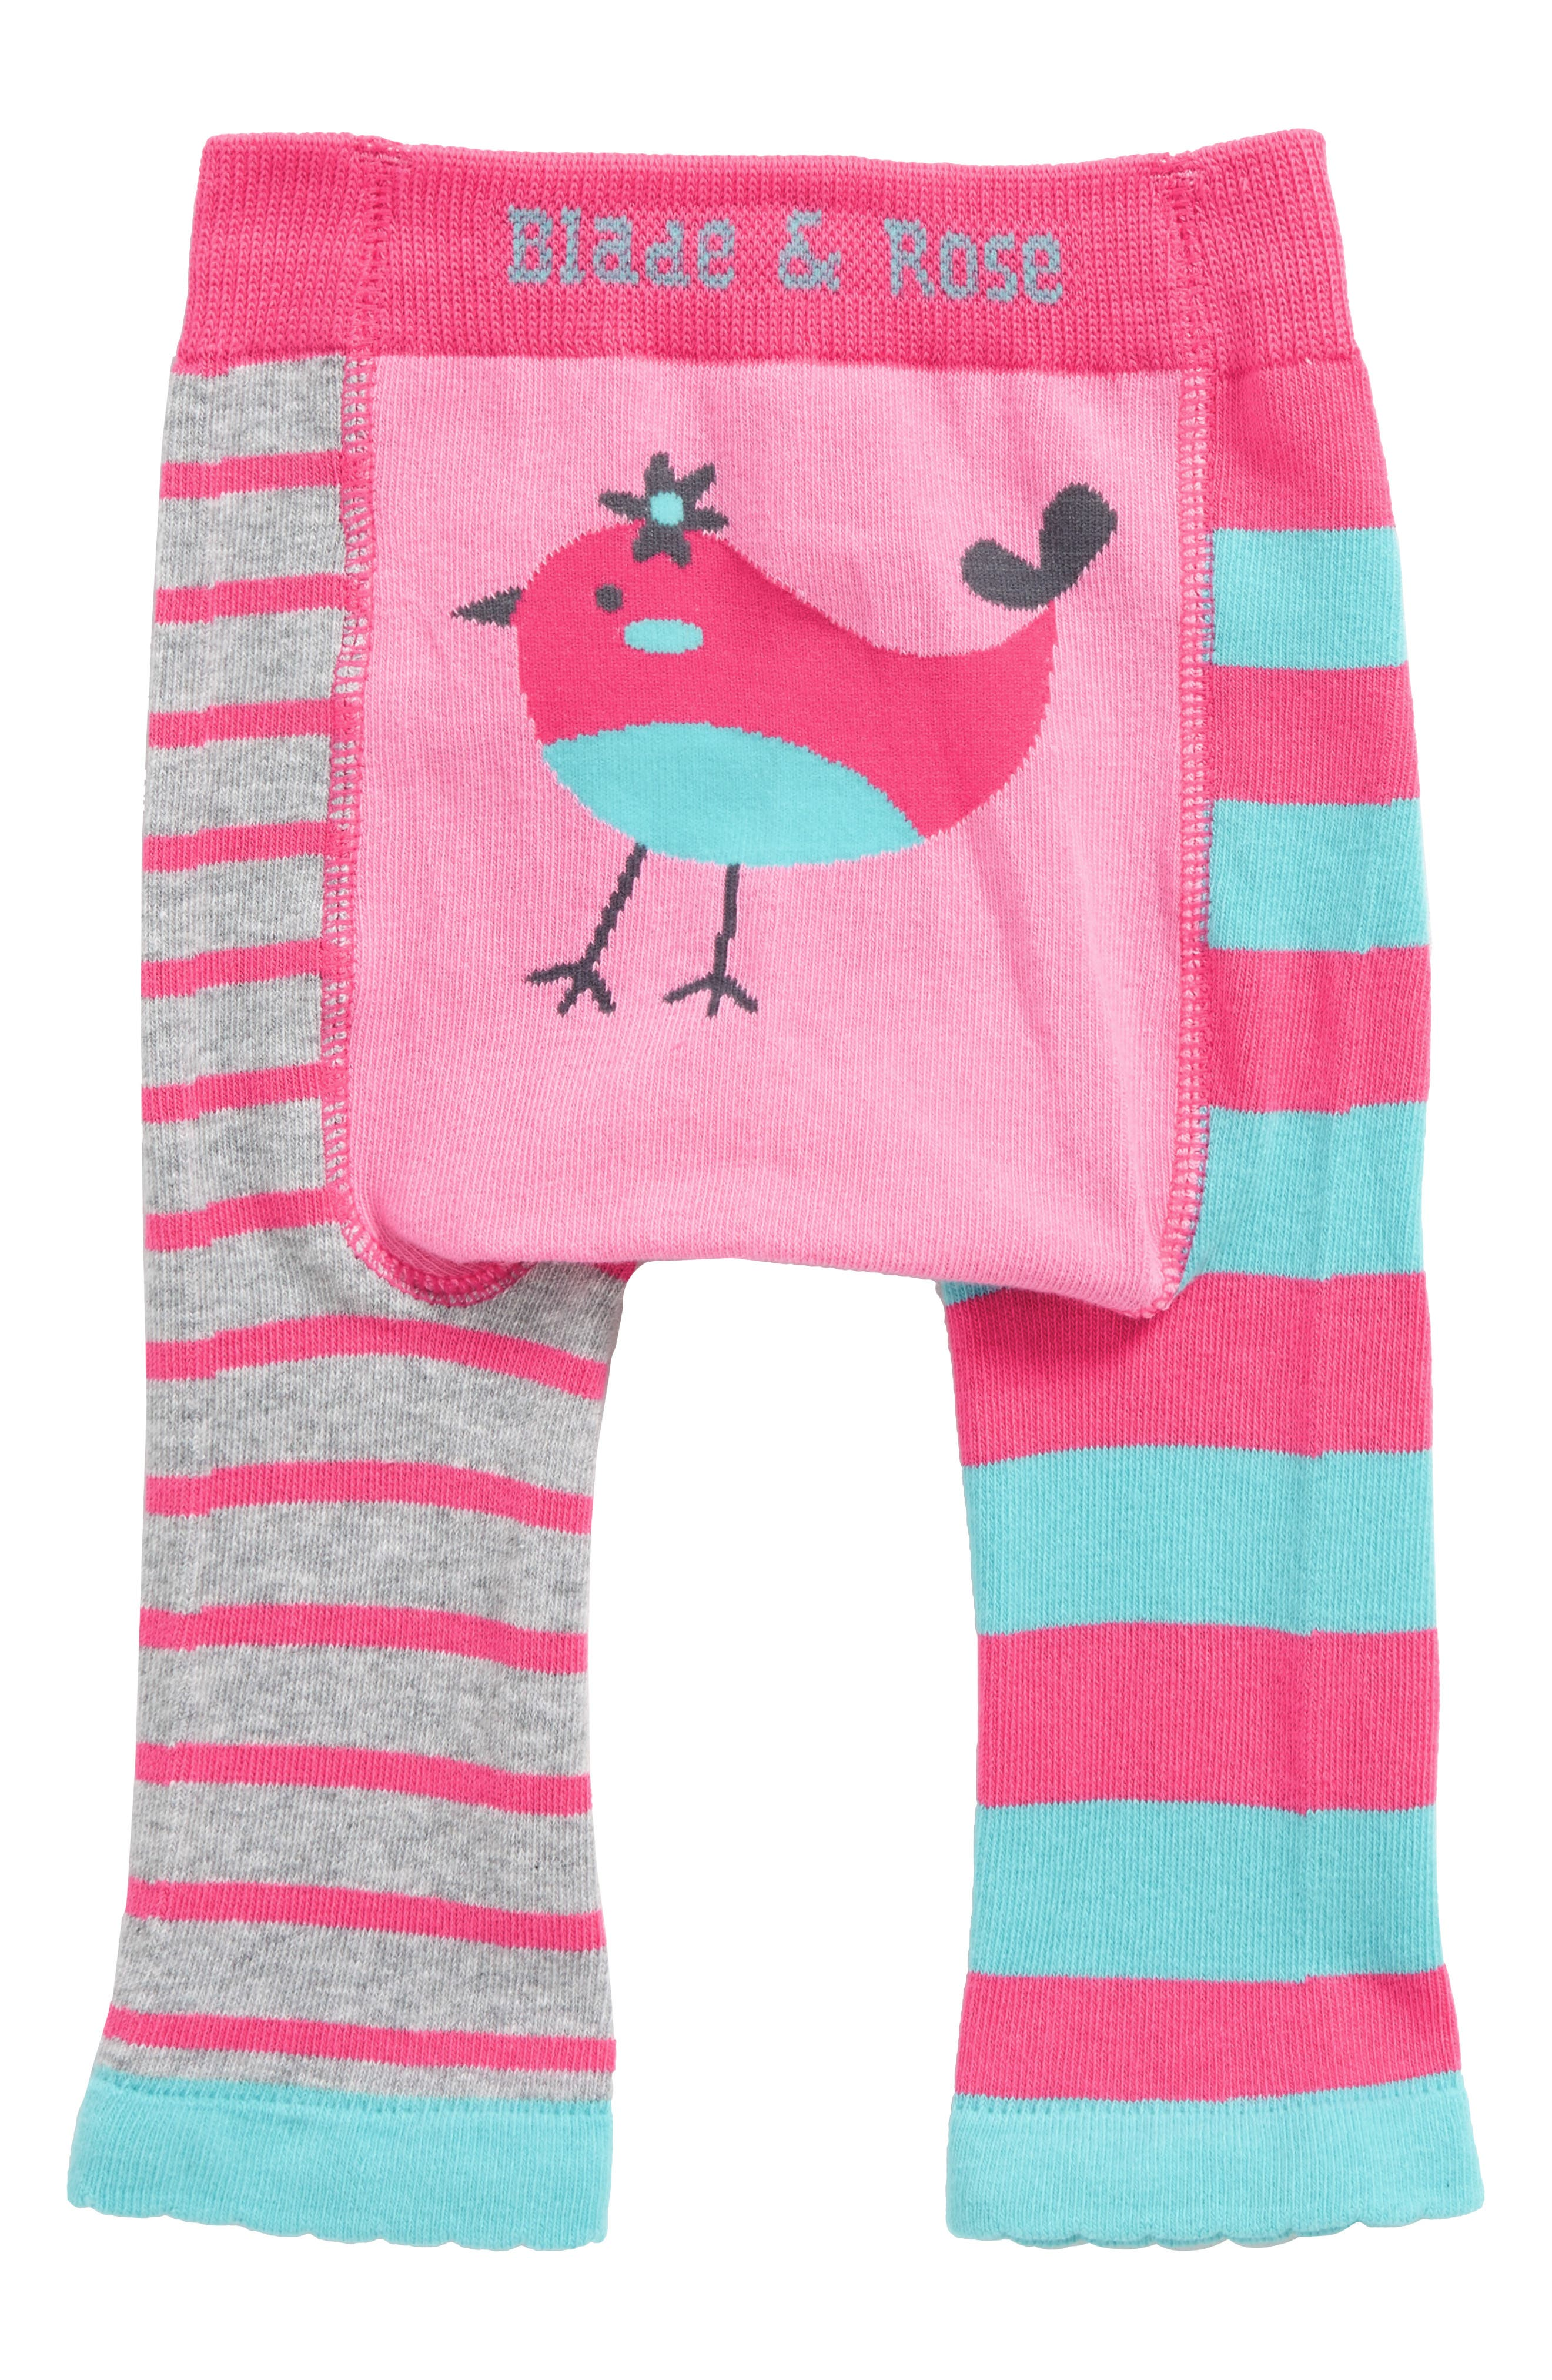 Tweetie Bird Leggings,                         Main,                         color, Baby Pink / Blue / Pink